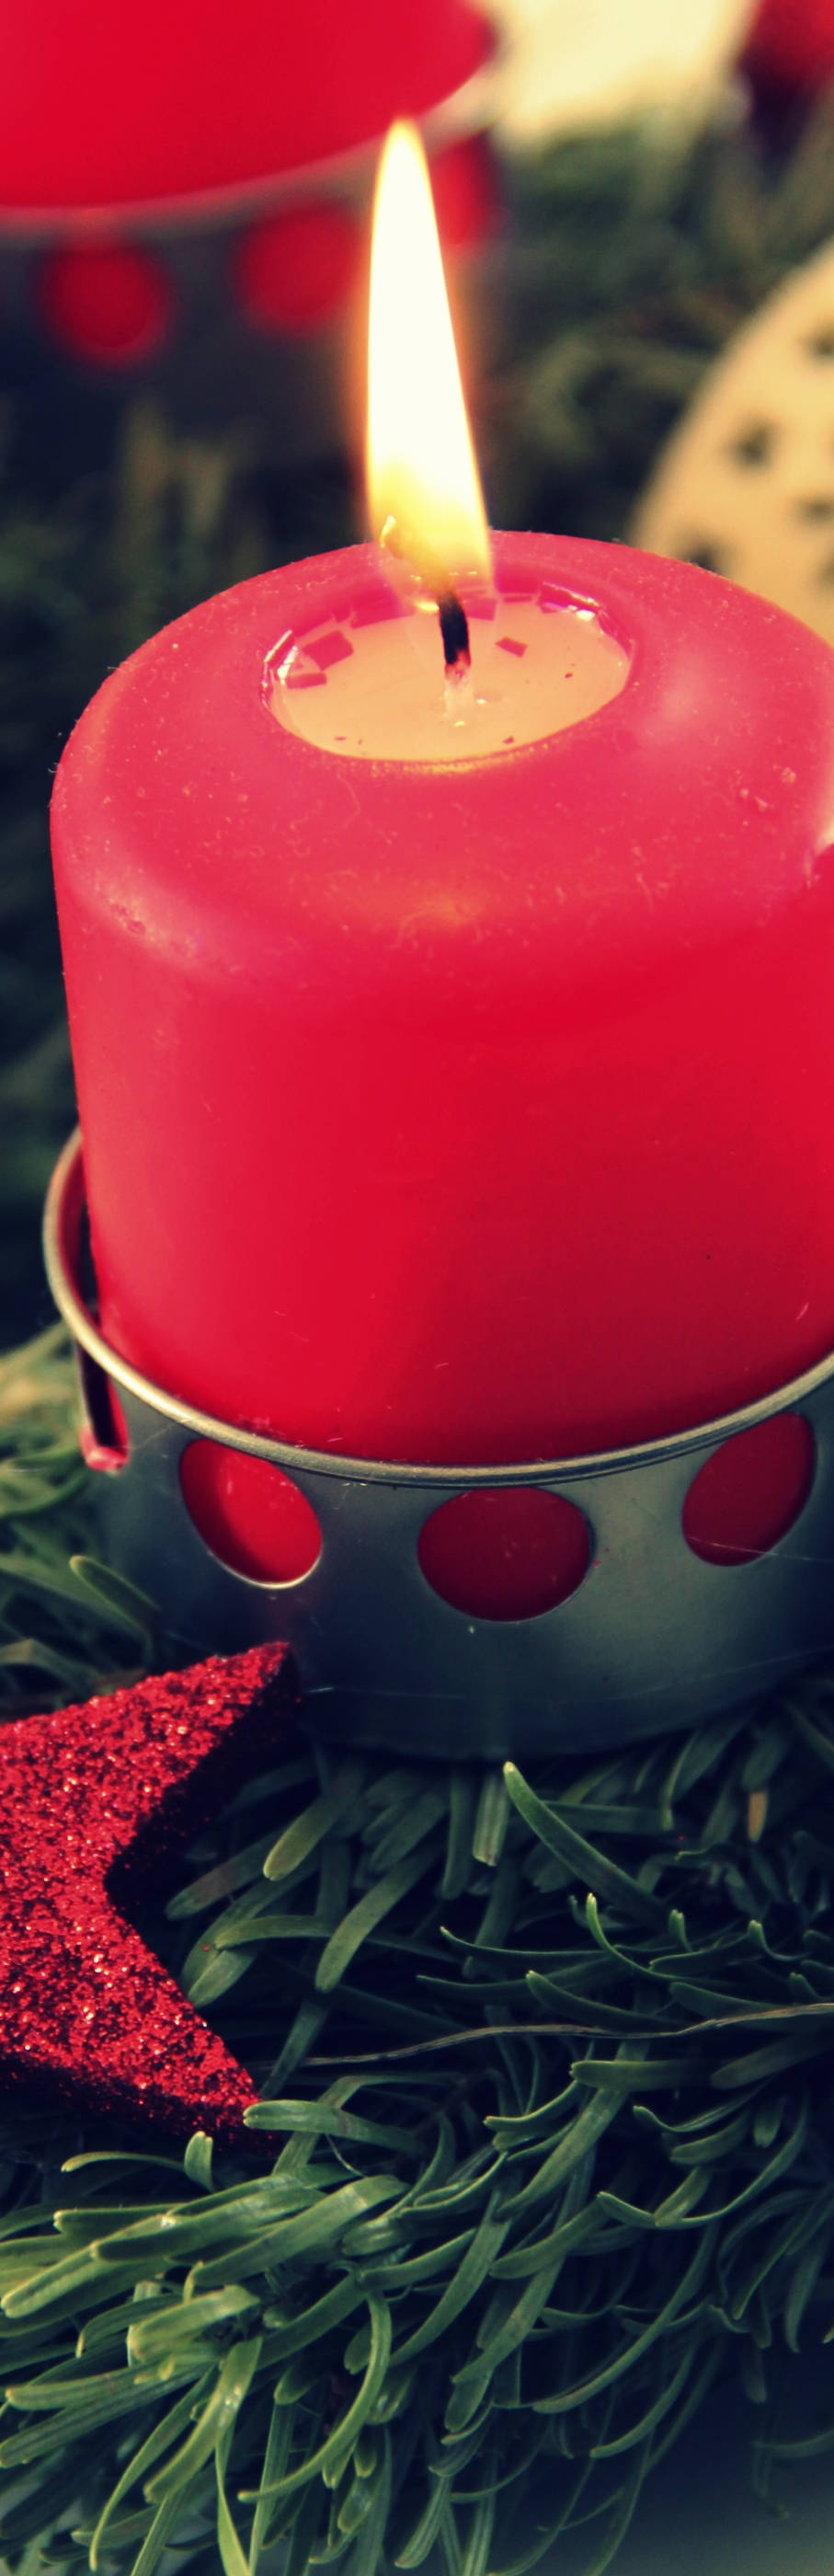 Irish Skin Foundation Xmas Newsletter Candle Image